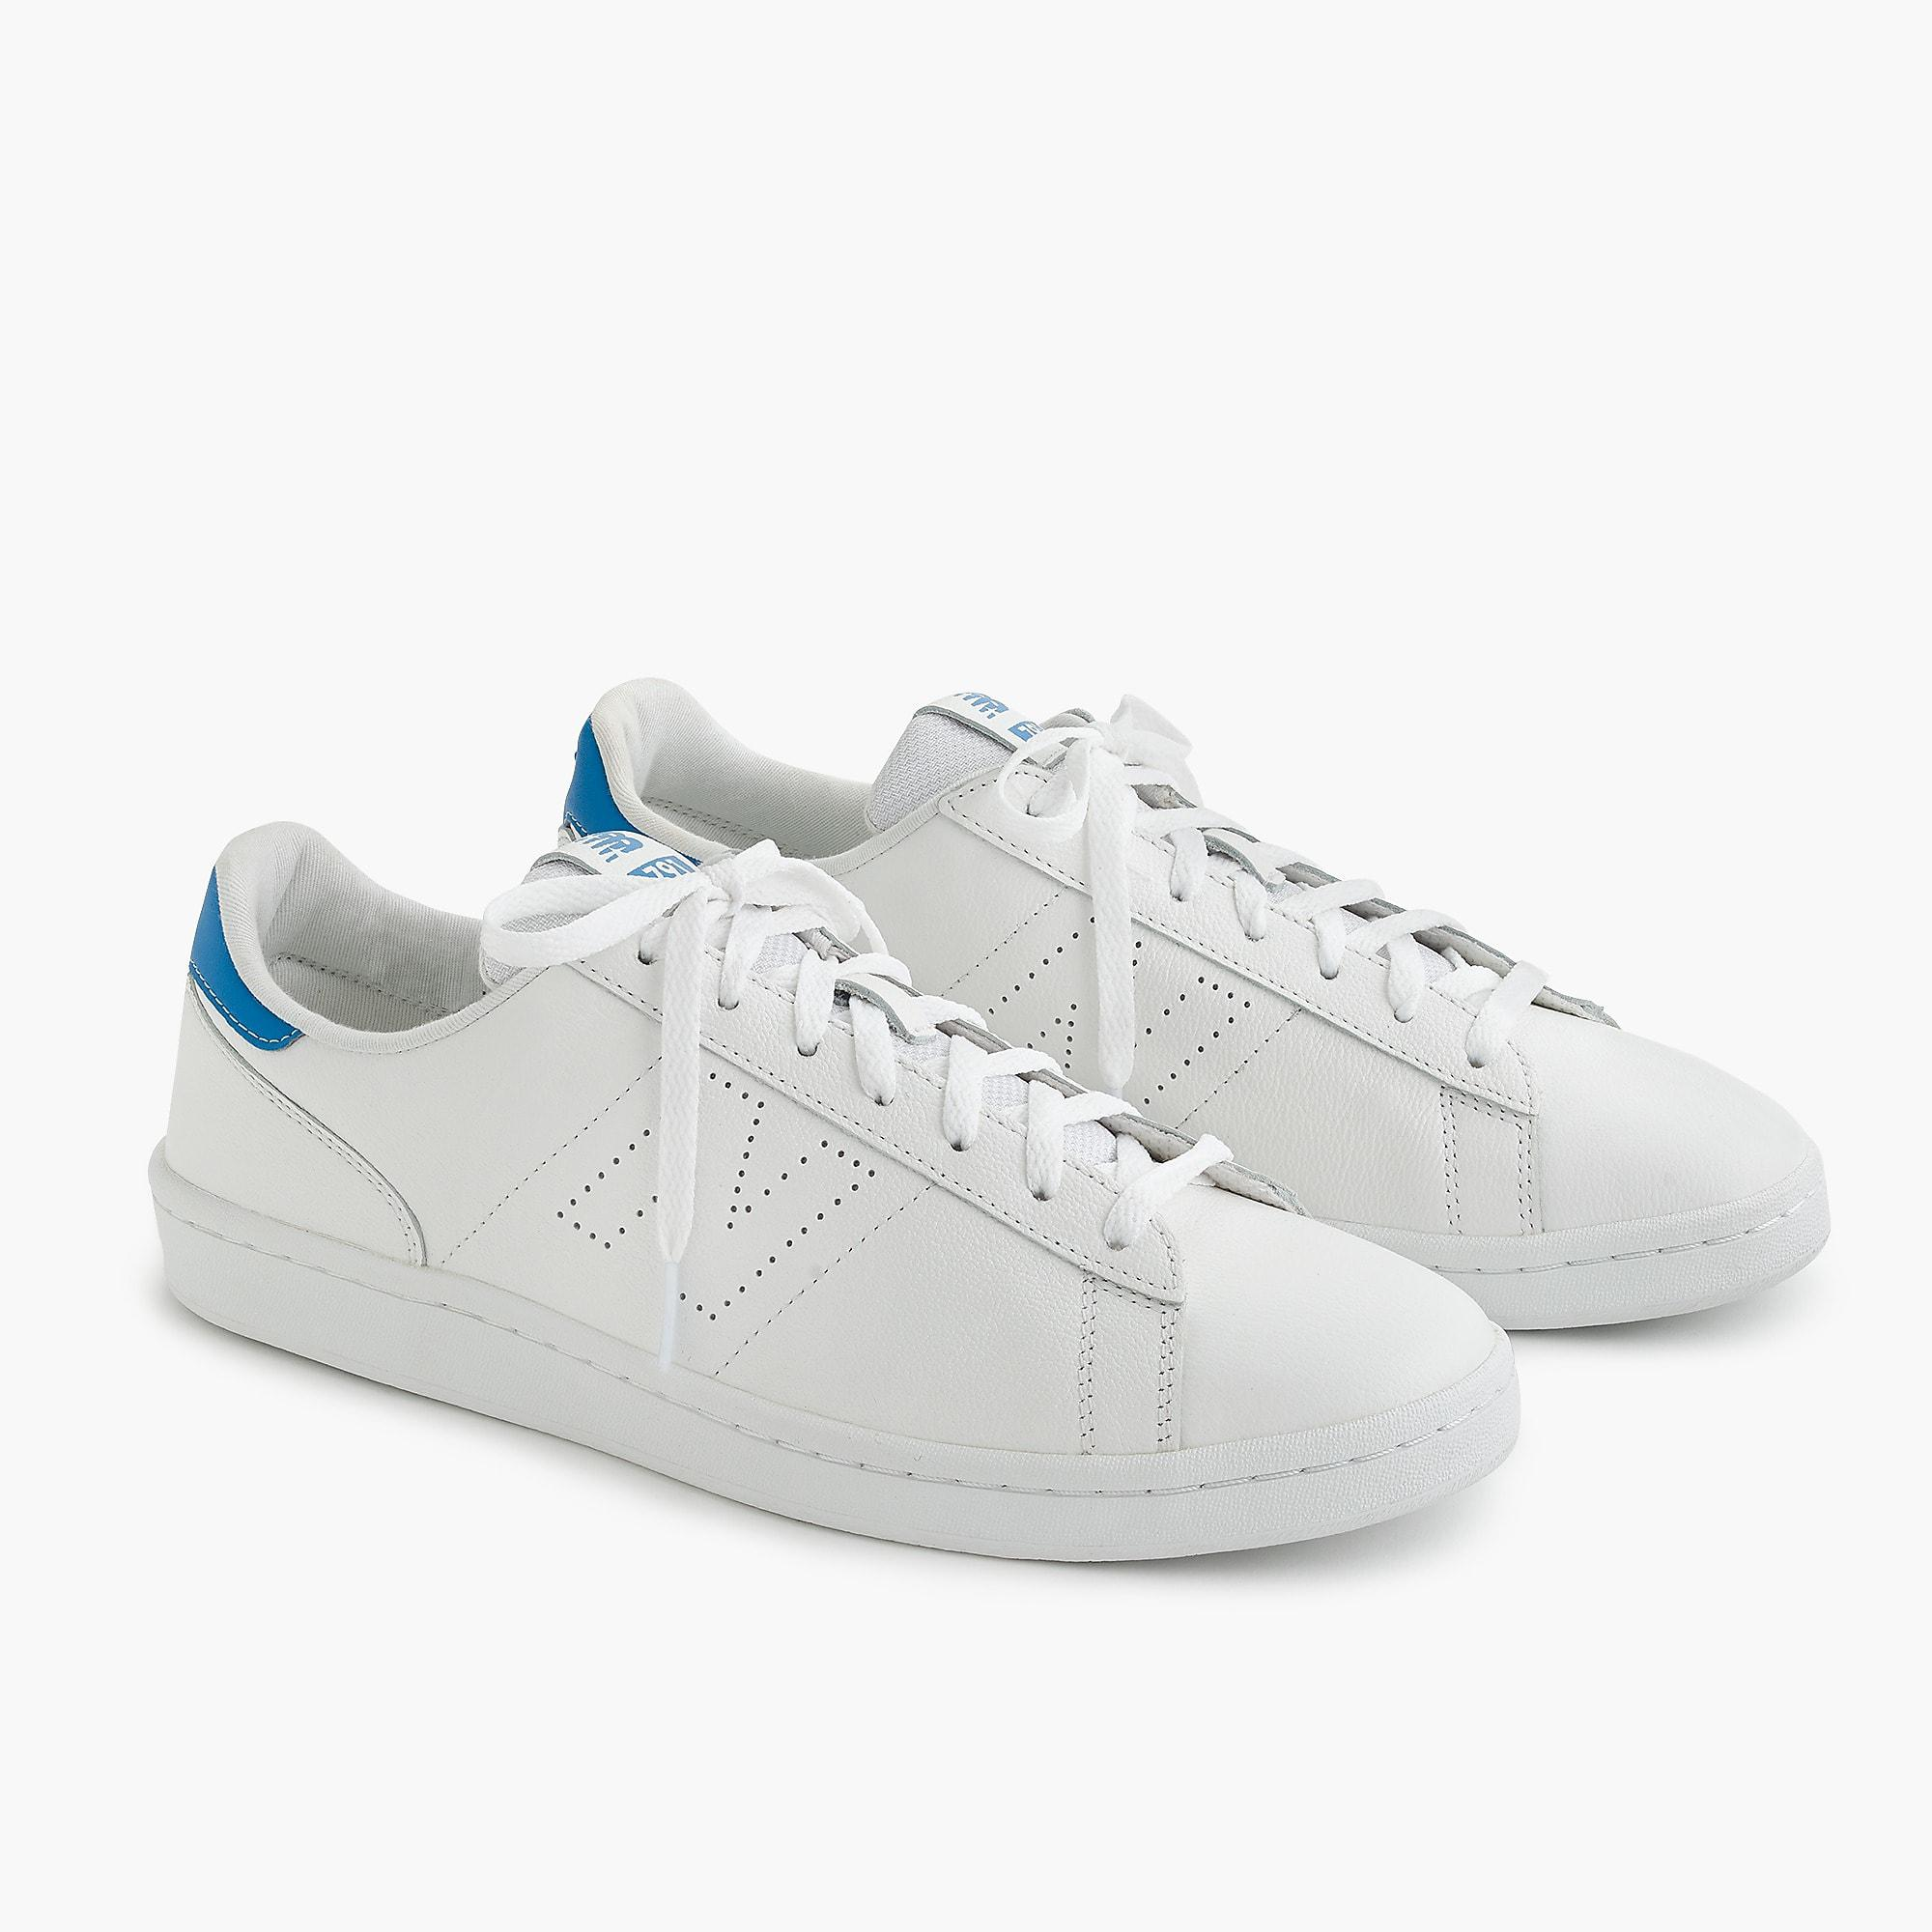 New Balance 791 Leather Sneakers in